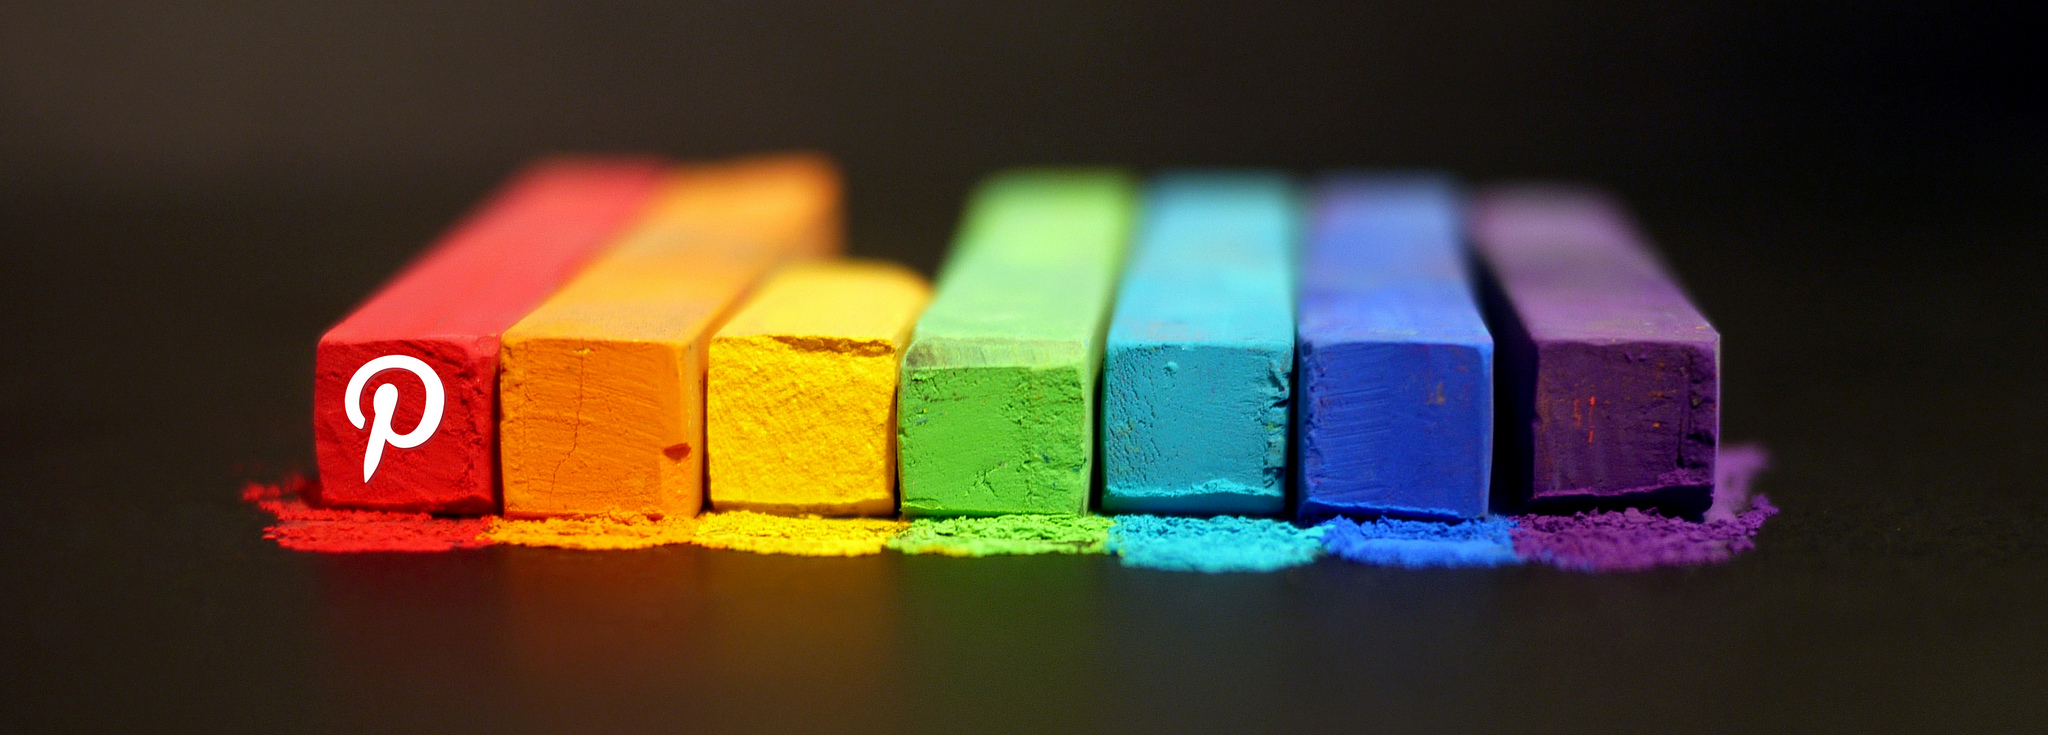 Coloured Chalks Showing Pinterest